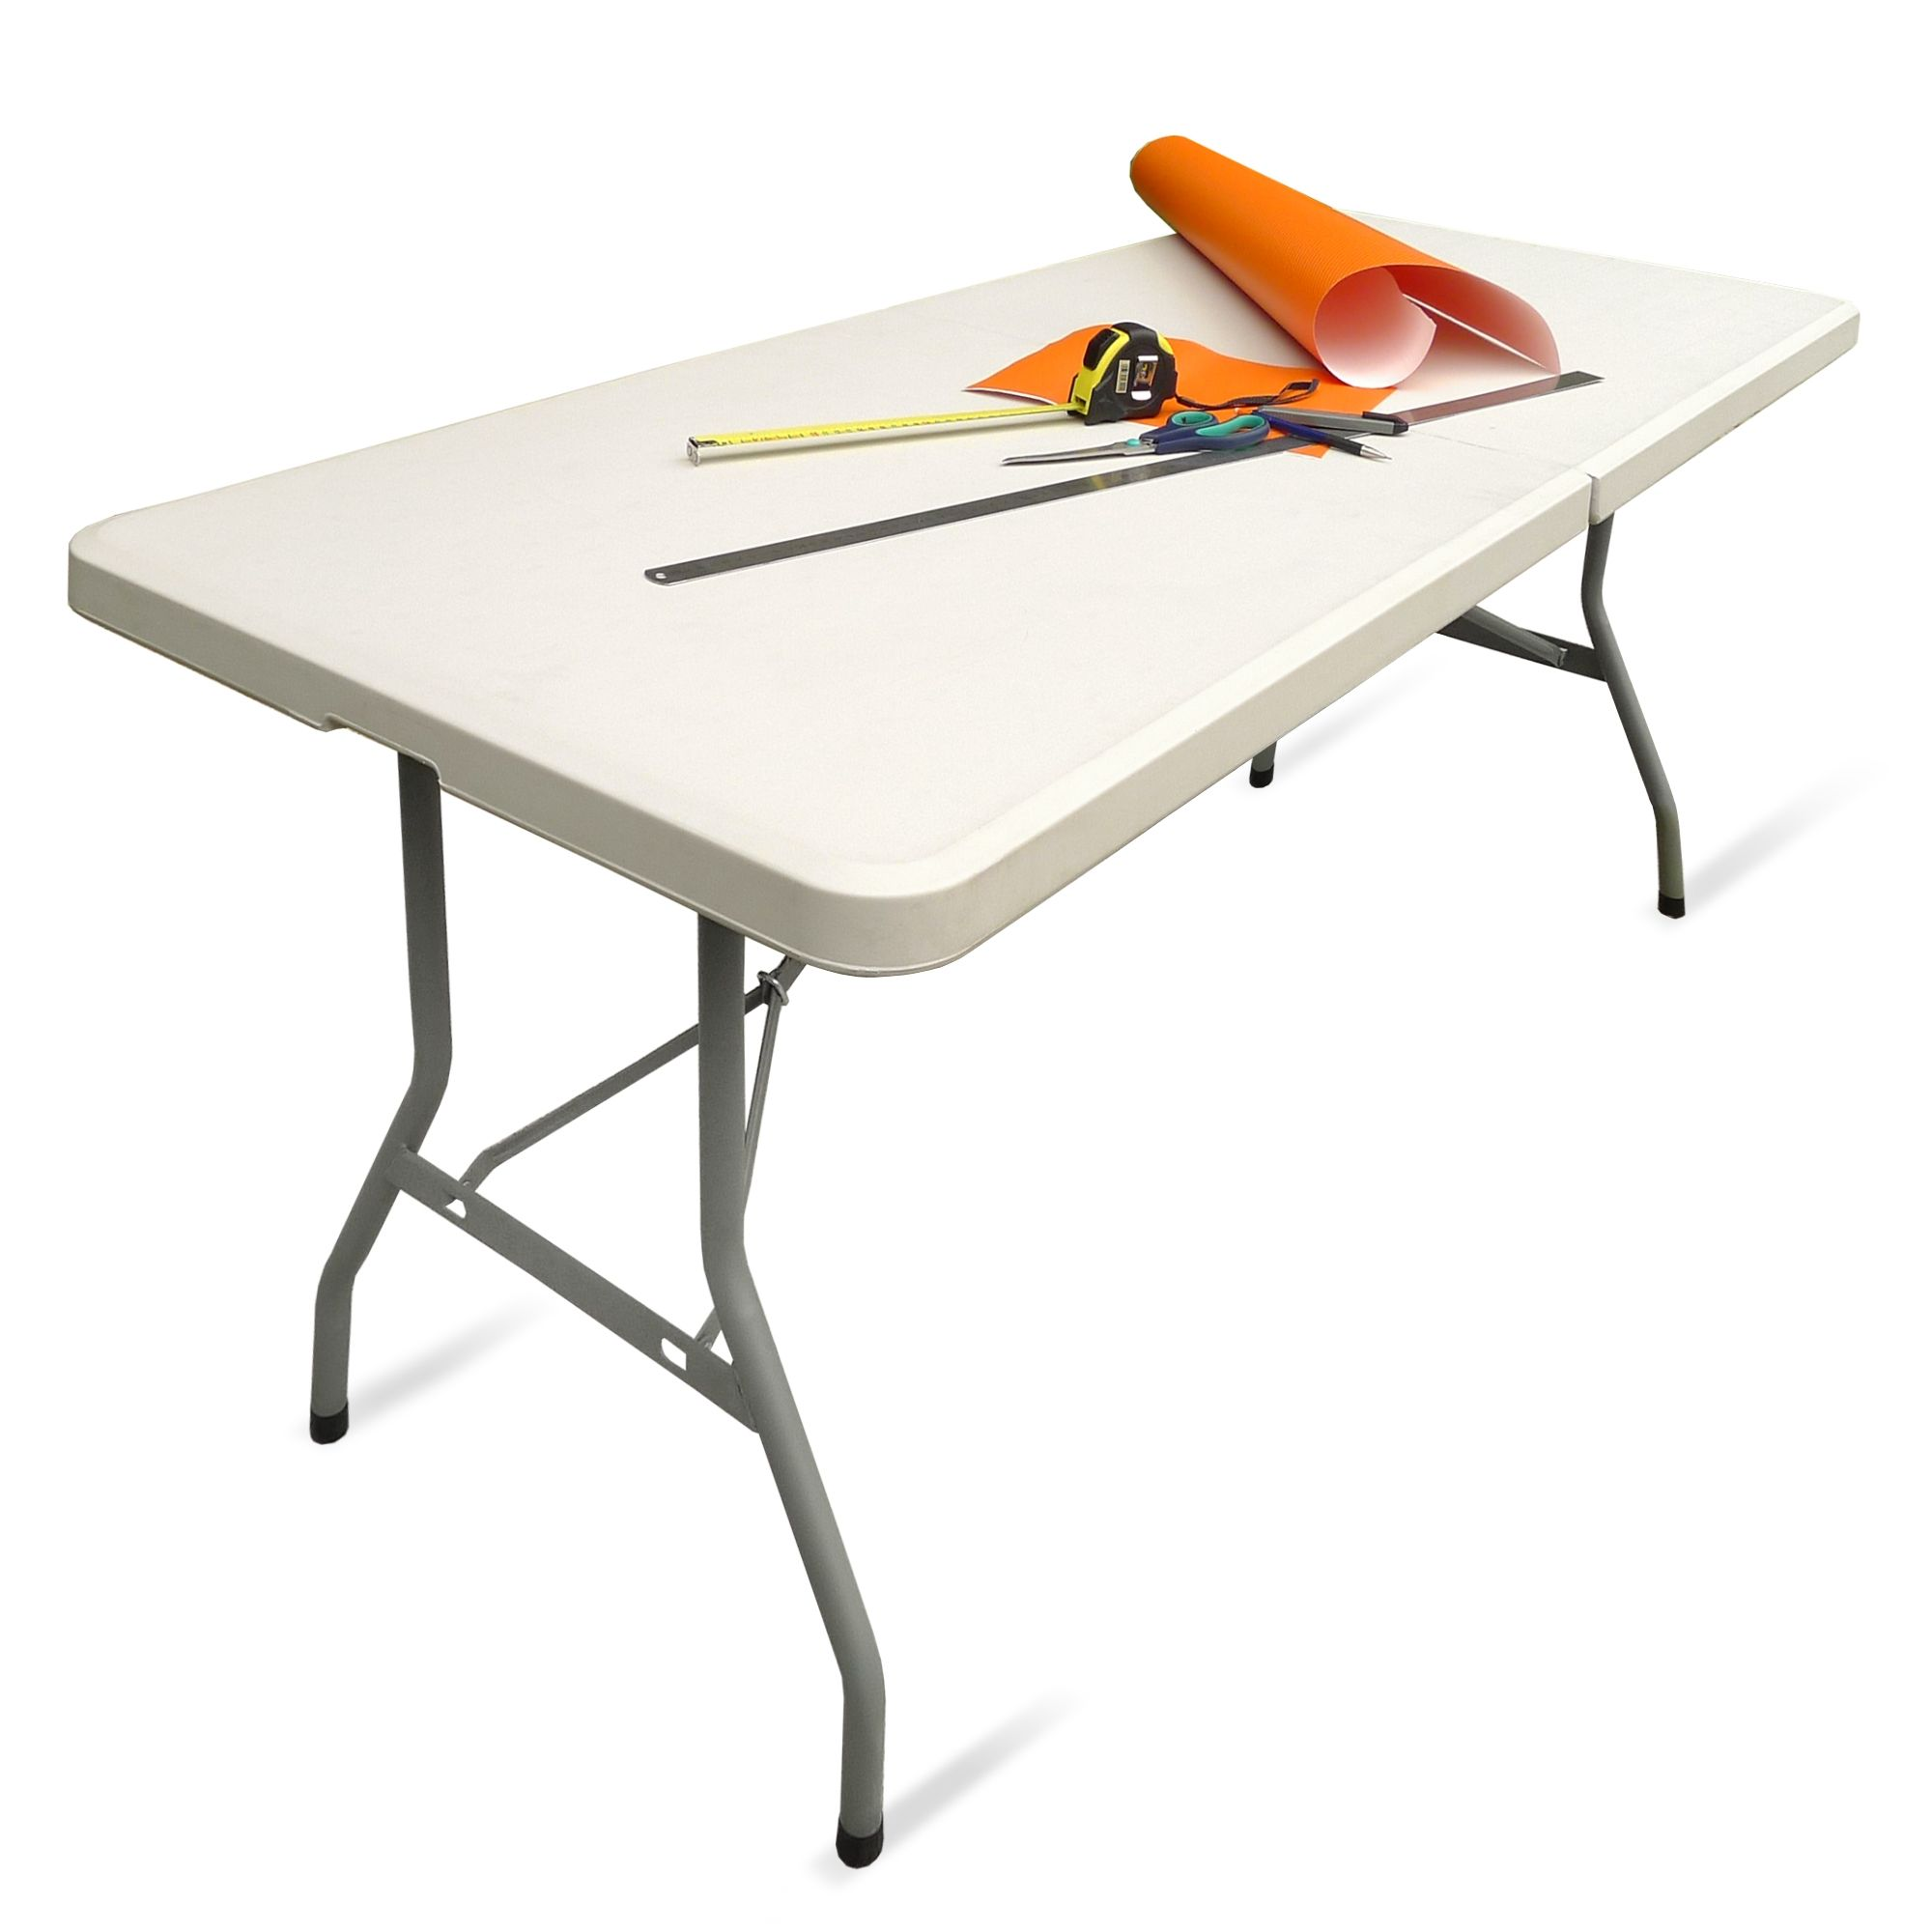 folding table, garden table, pasting table, camping table, flea